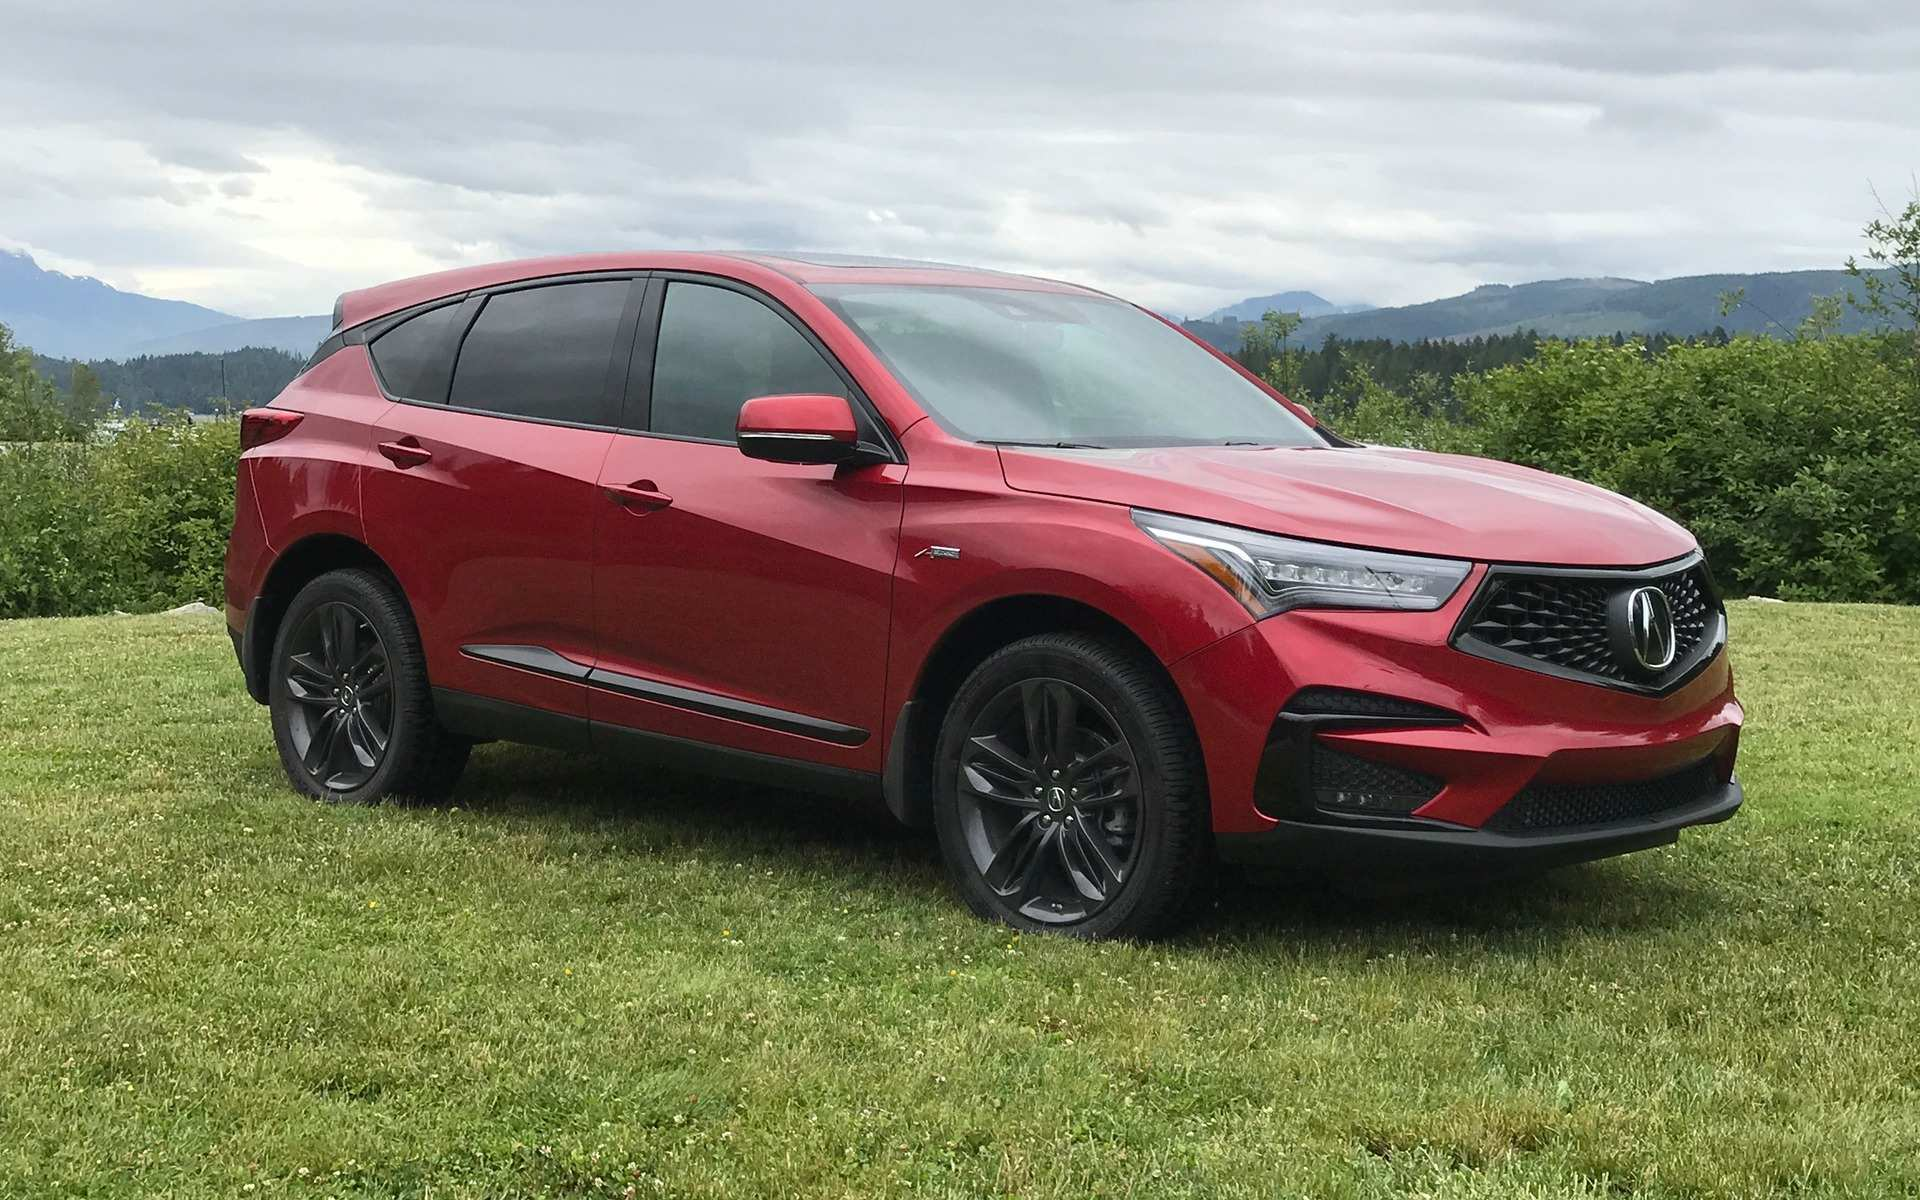 35 New 2019 Acura Rdx Preview First Drive for 2019 Acura Rdx Preview